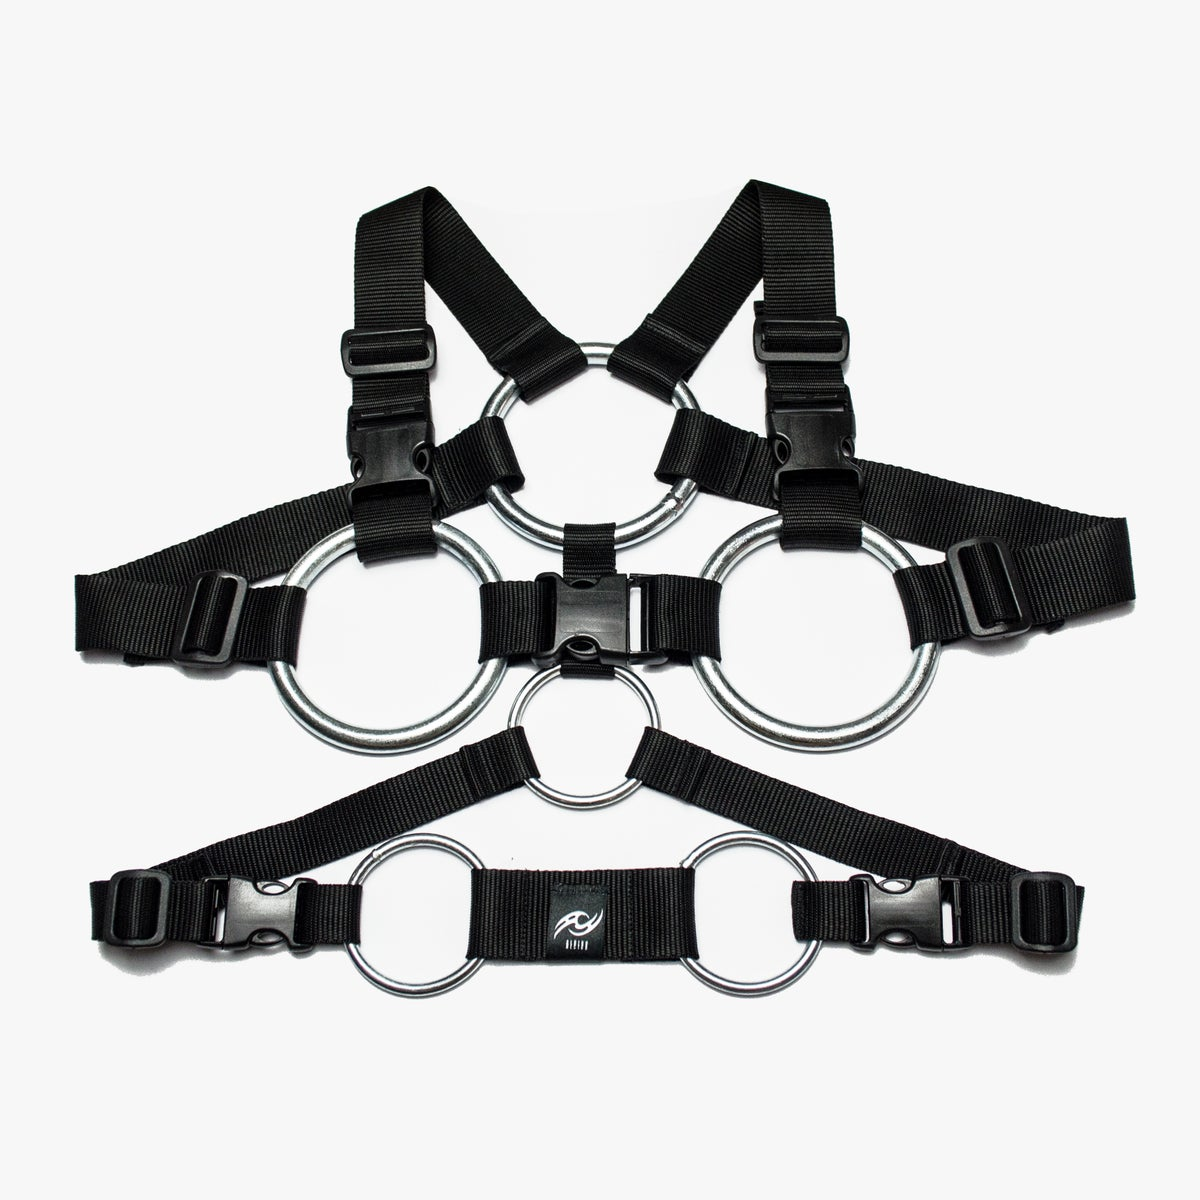 Image of TACTICAL HARNESS A01 - BLACK